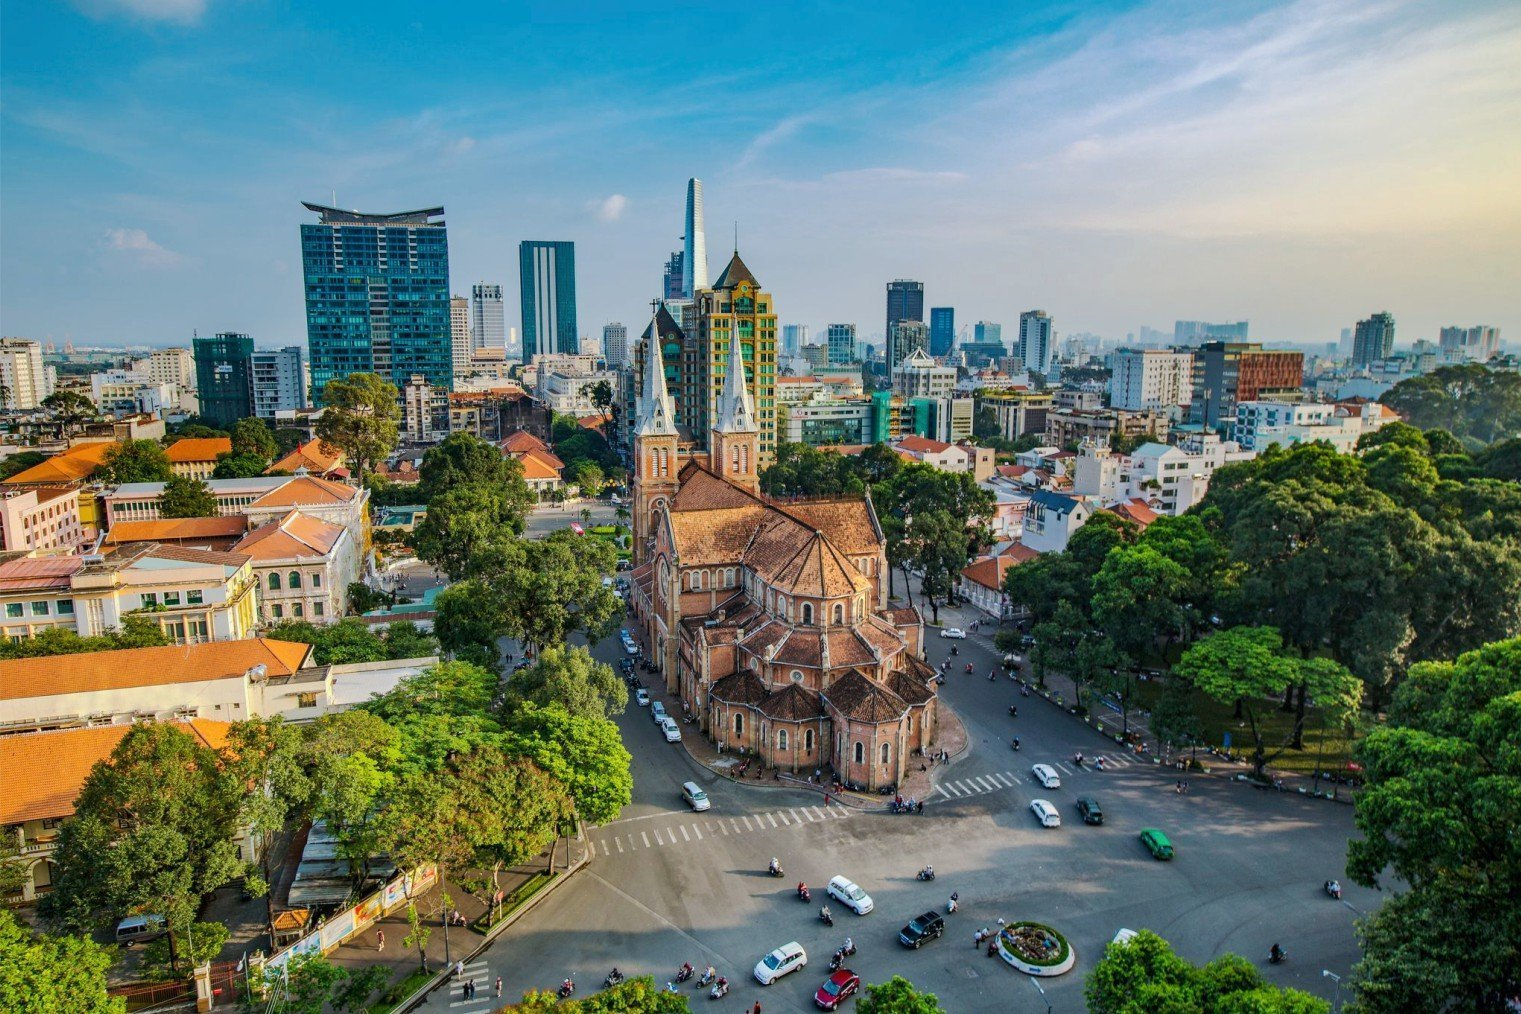 Ho Chi Minh City. Notre Dame Cathedral Basilica of Saigon. Хошимин. Сайгон